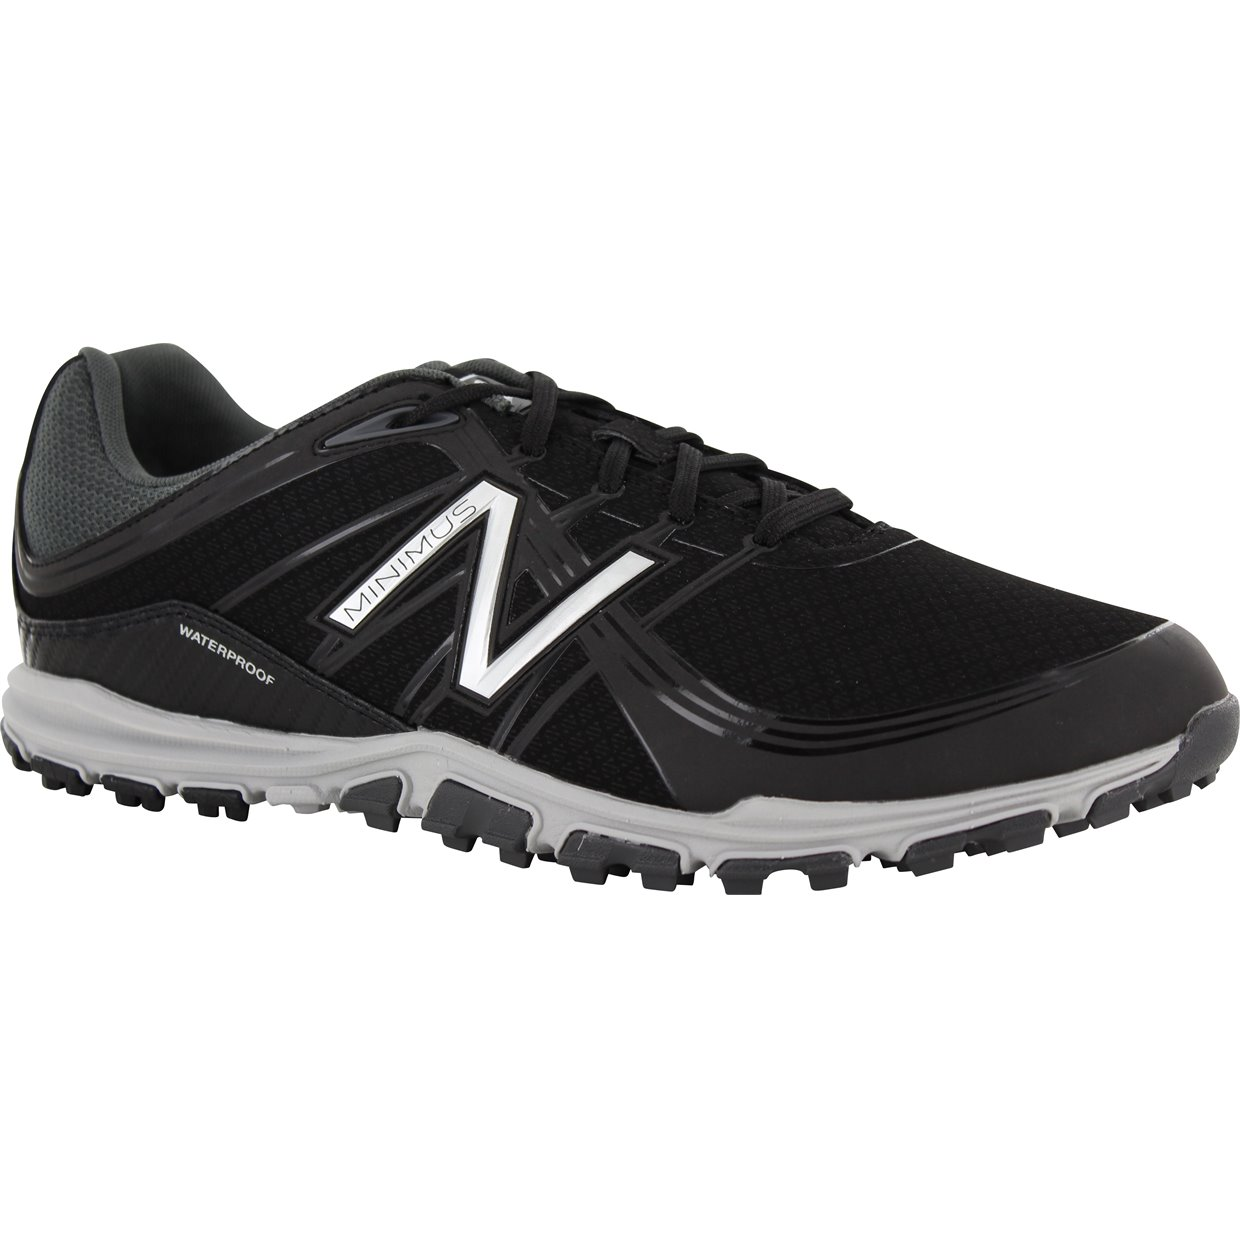 58f053aac9c74 New Balance Minimus 1005 Spikeless Shoes at GlobalGolf.com